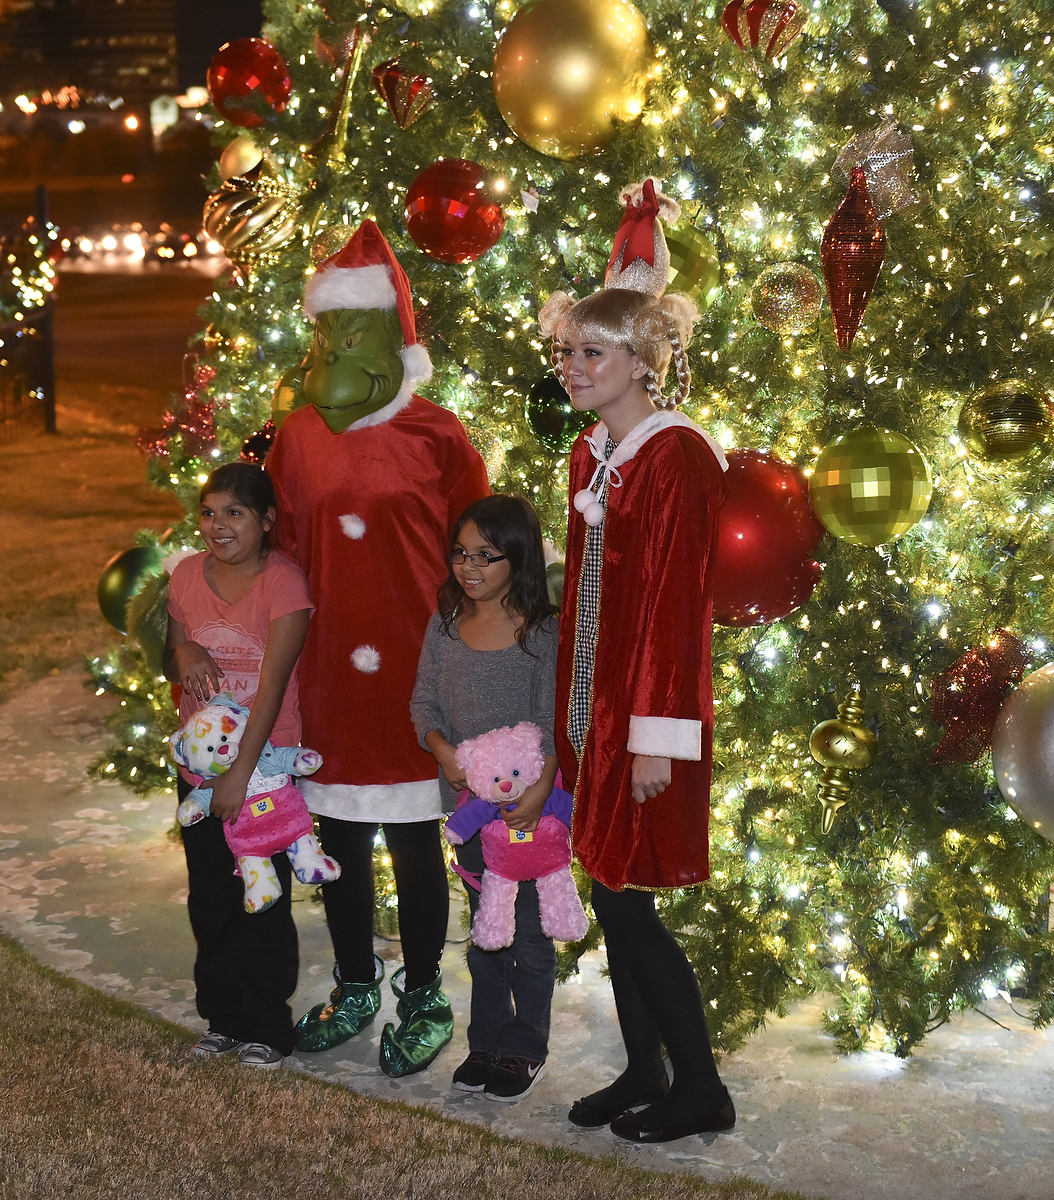 (Video) Hoover lights official city Christmas tree and welcomes Santa Claus - HooverSun.com